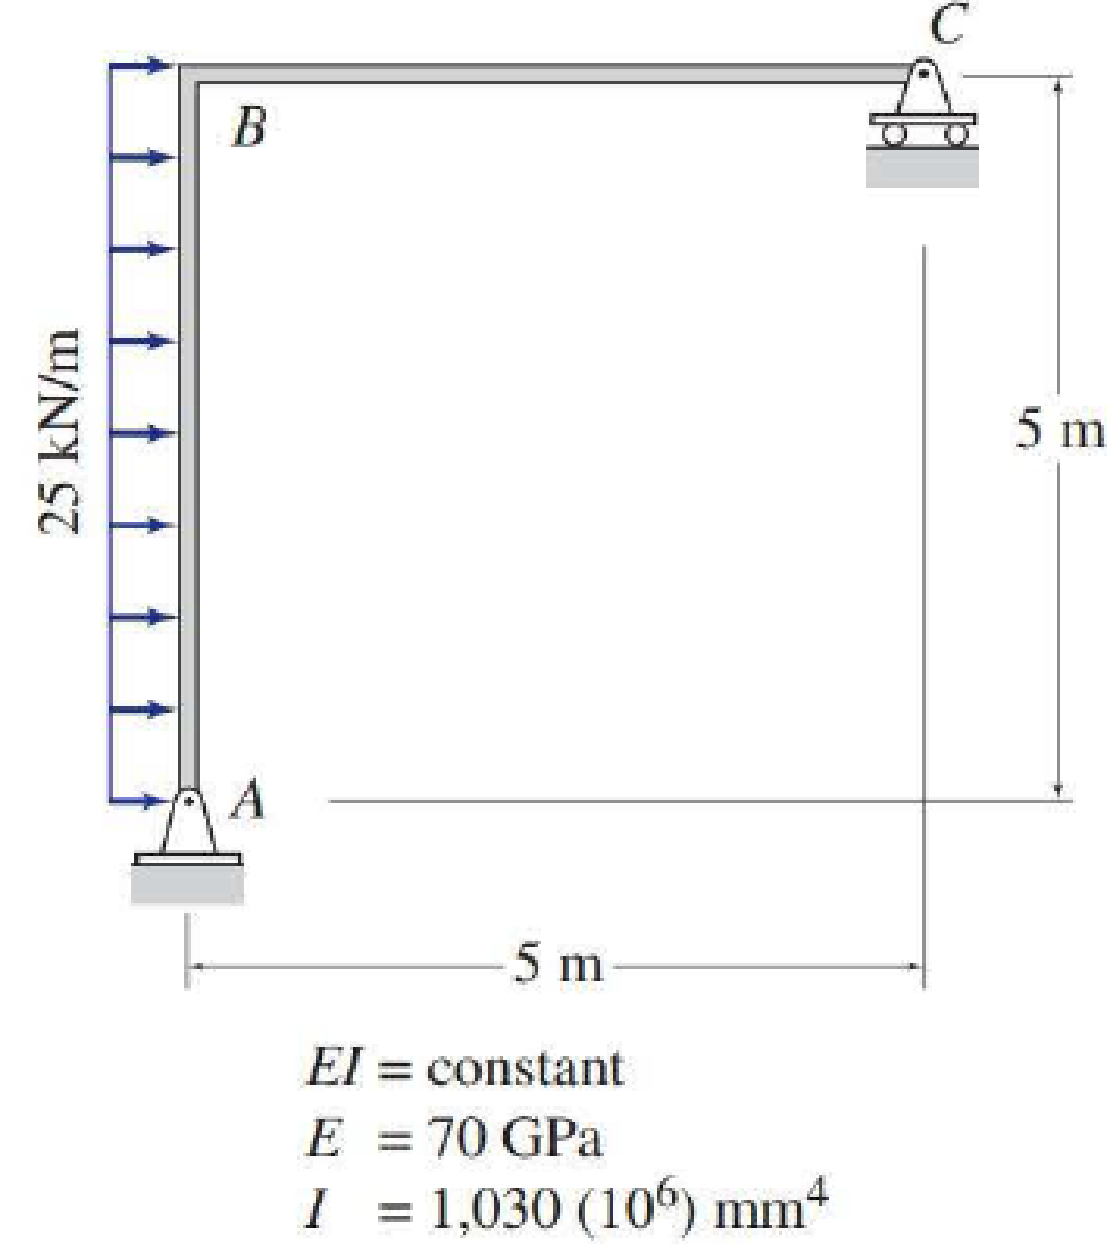 Chapter 7, Problem 38P, Use the virtual work method to determine the horizontal deflection at joint C of the frame shown.